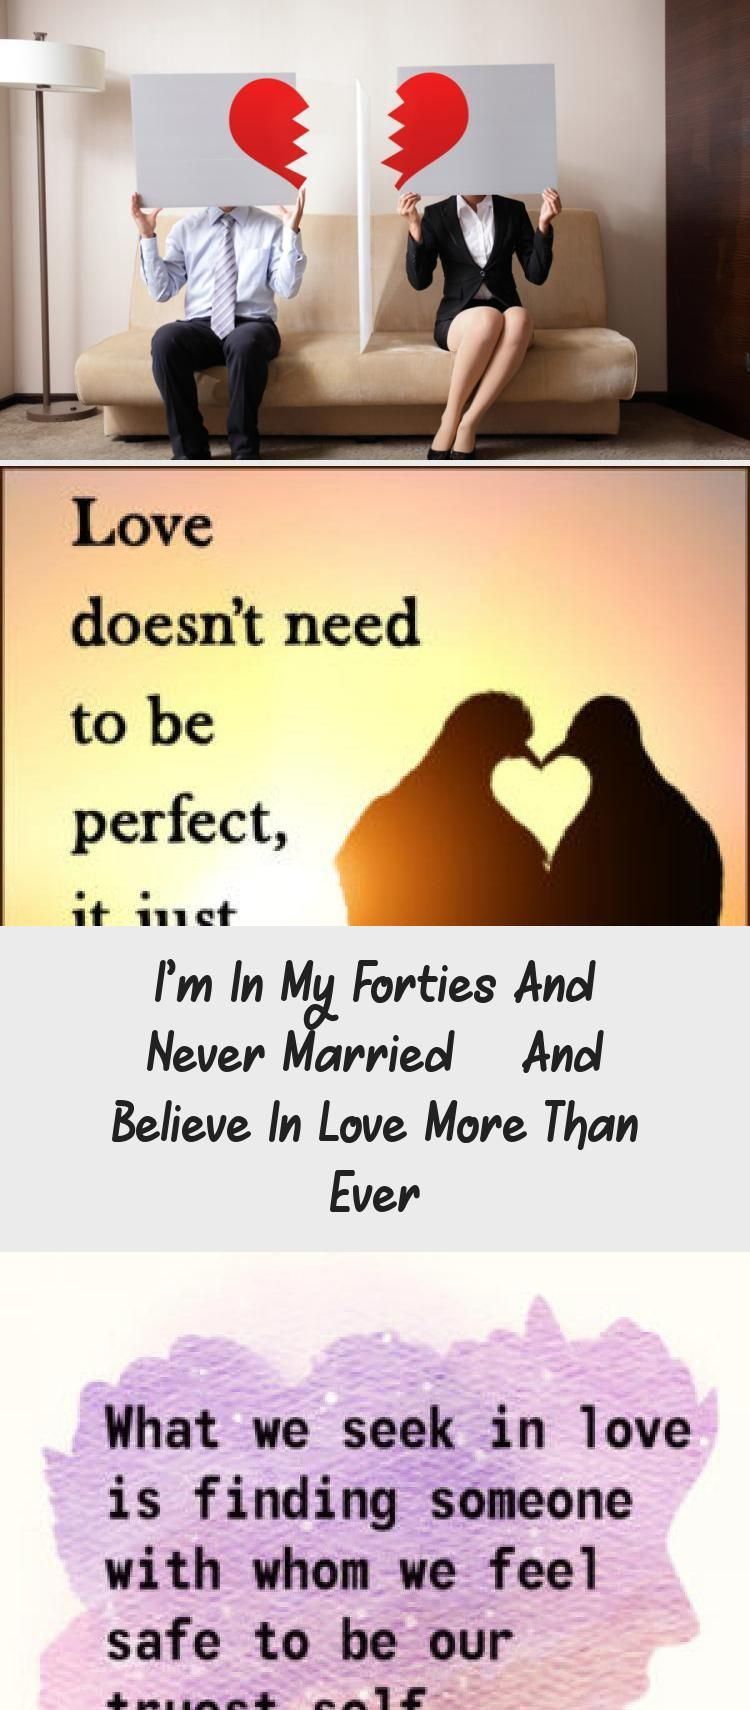 I'm in my forties and never married and believe in love